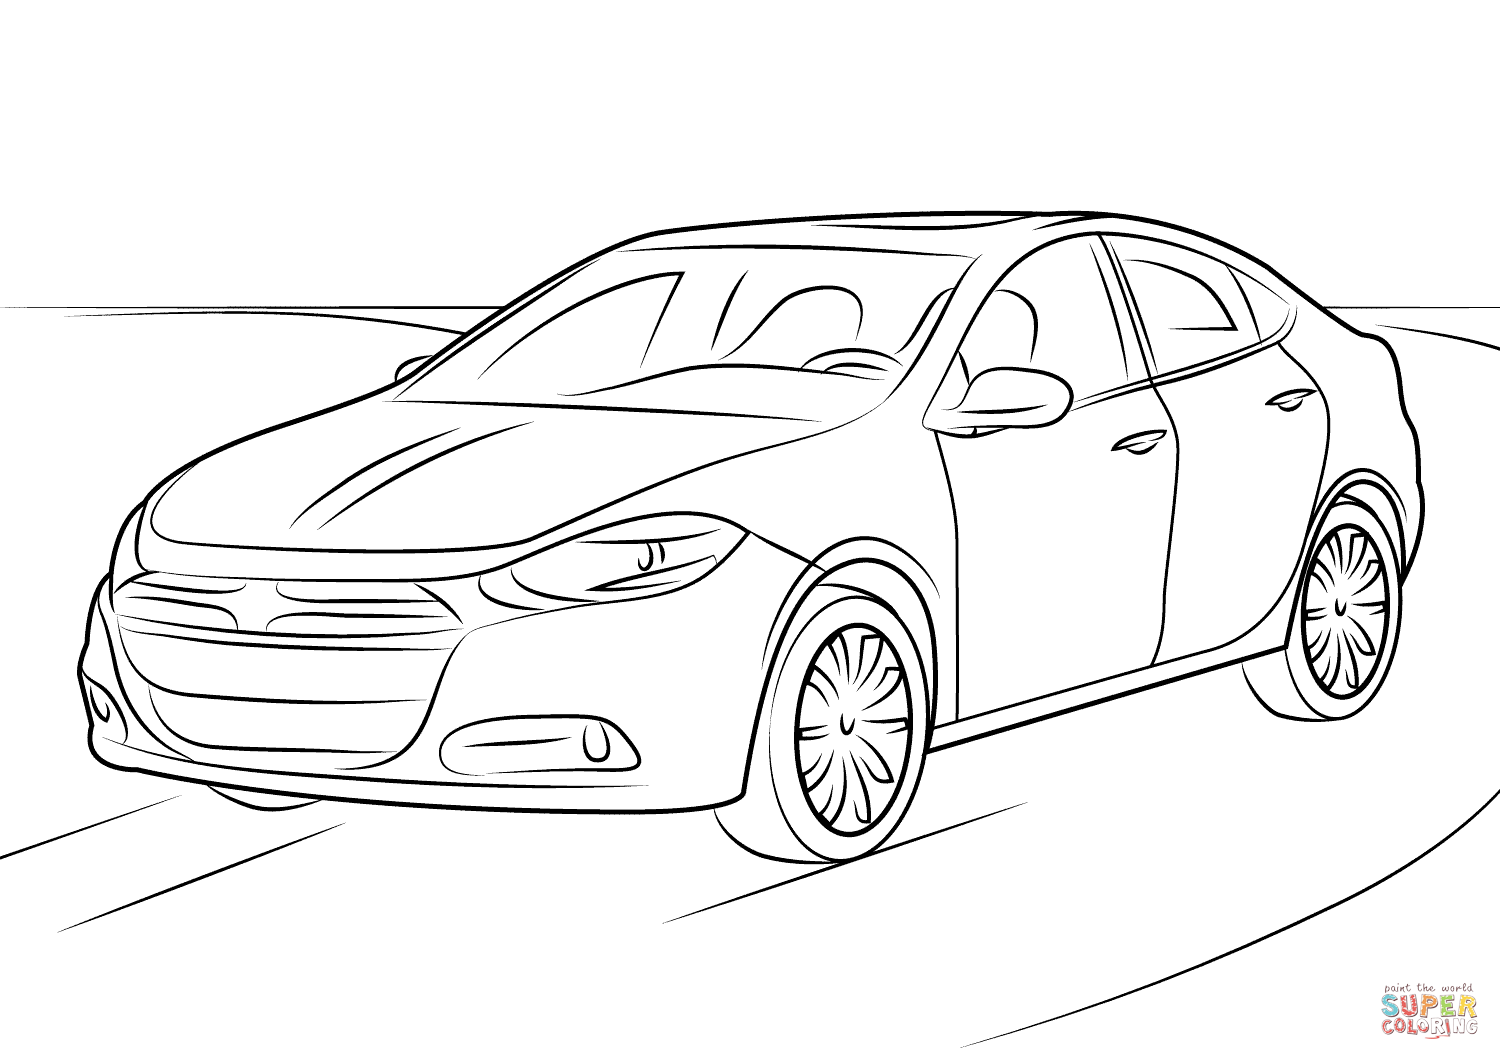 charger coloring pages 98 wicked dodge coloring pages conexionunder coloring charger pages